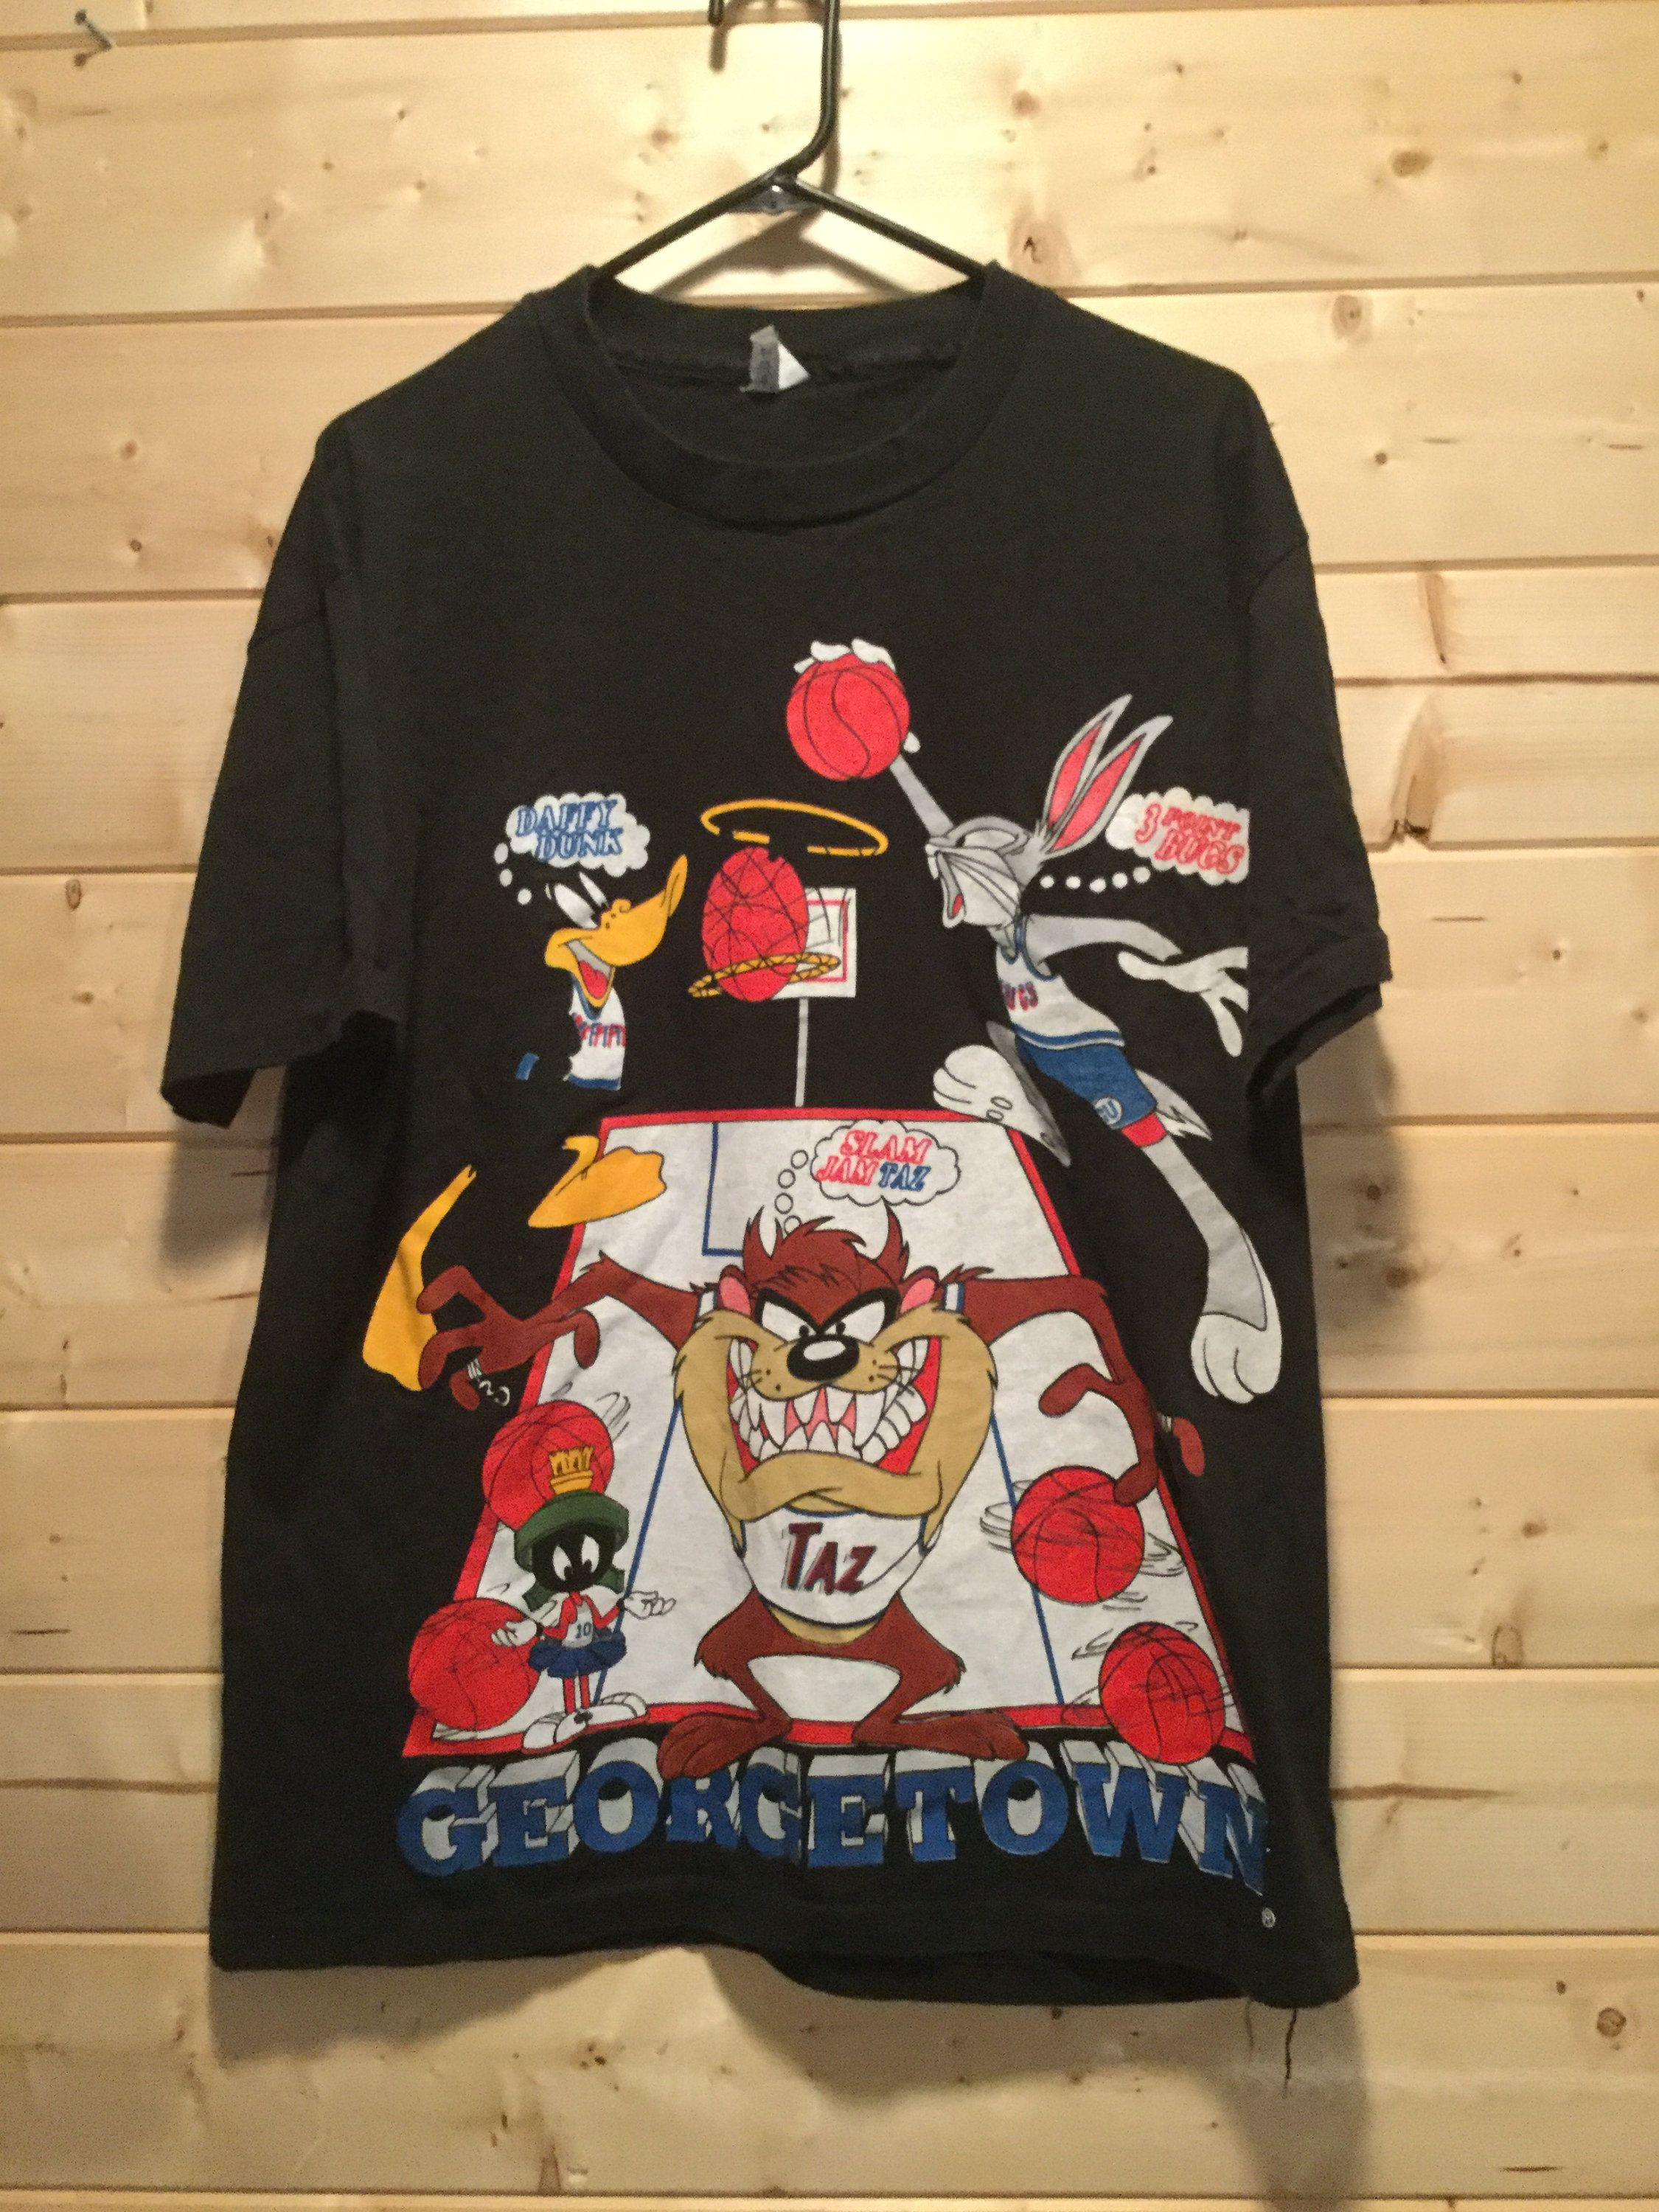 922ca0a2f2f2 Vintage 1993 Bugs Bunny Taz Daffy Duck Georgetown Hoyas Looney Tunes T-Shirt  Made in USA by 413productions on Etsy